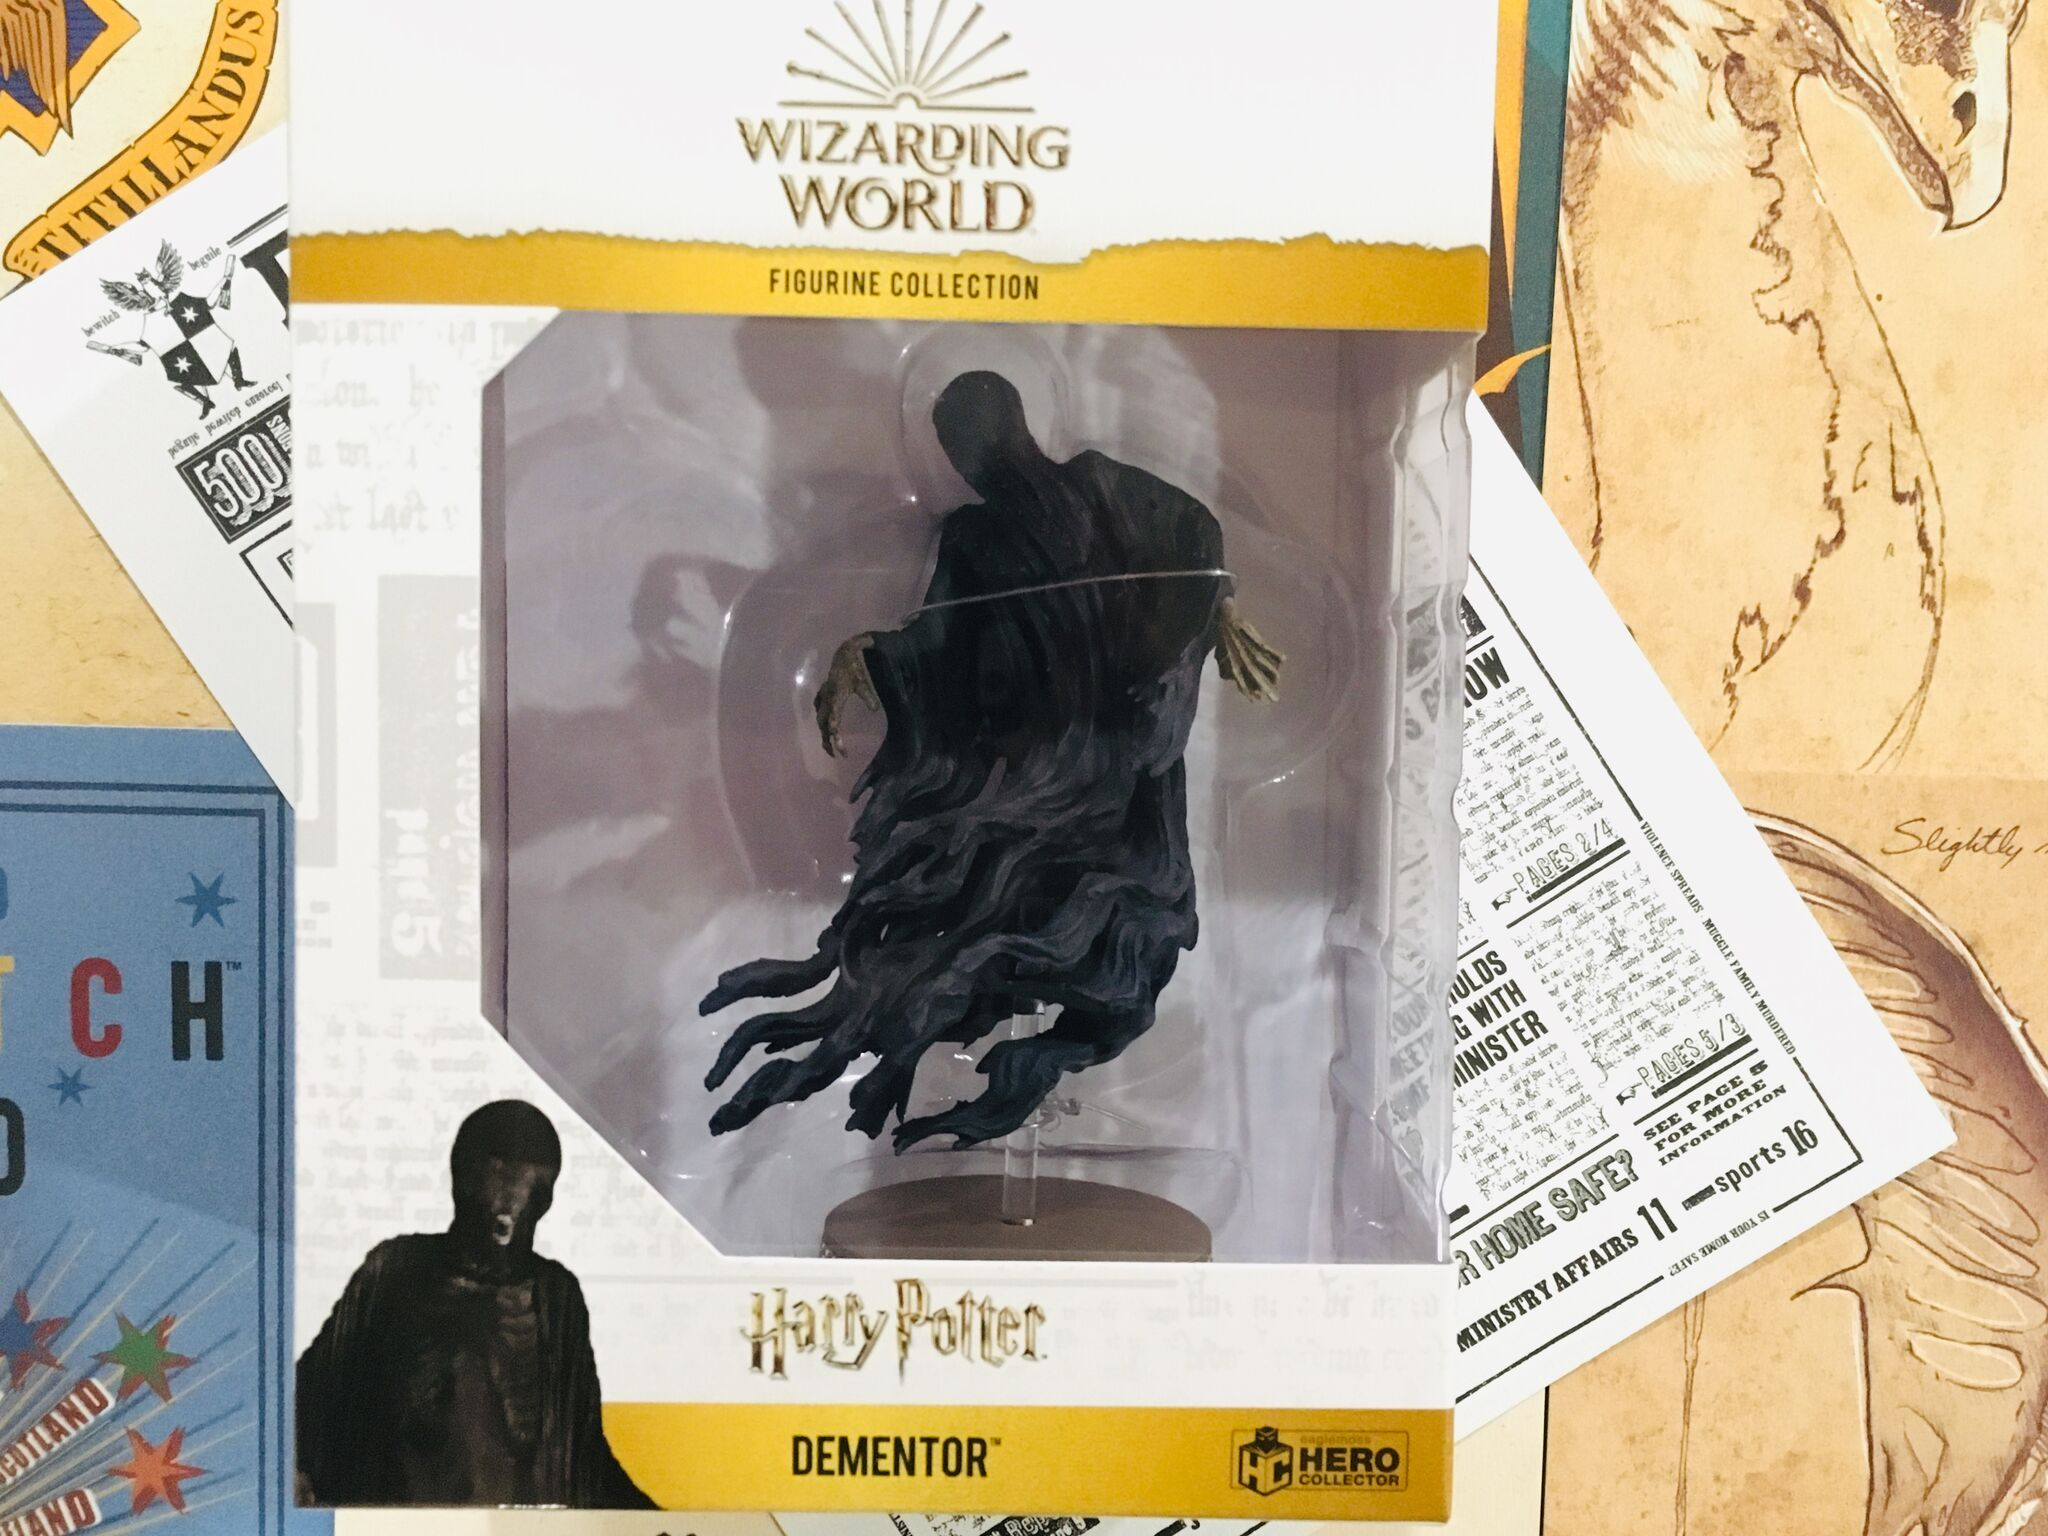 The Dementor is carefully packaged in a collectable box to ensure safety during delivery and as well as for maximum display capabilities.